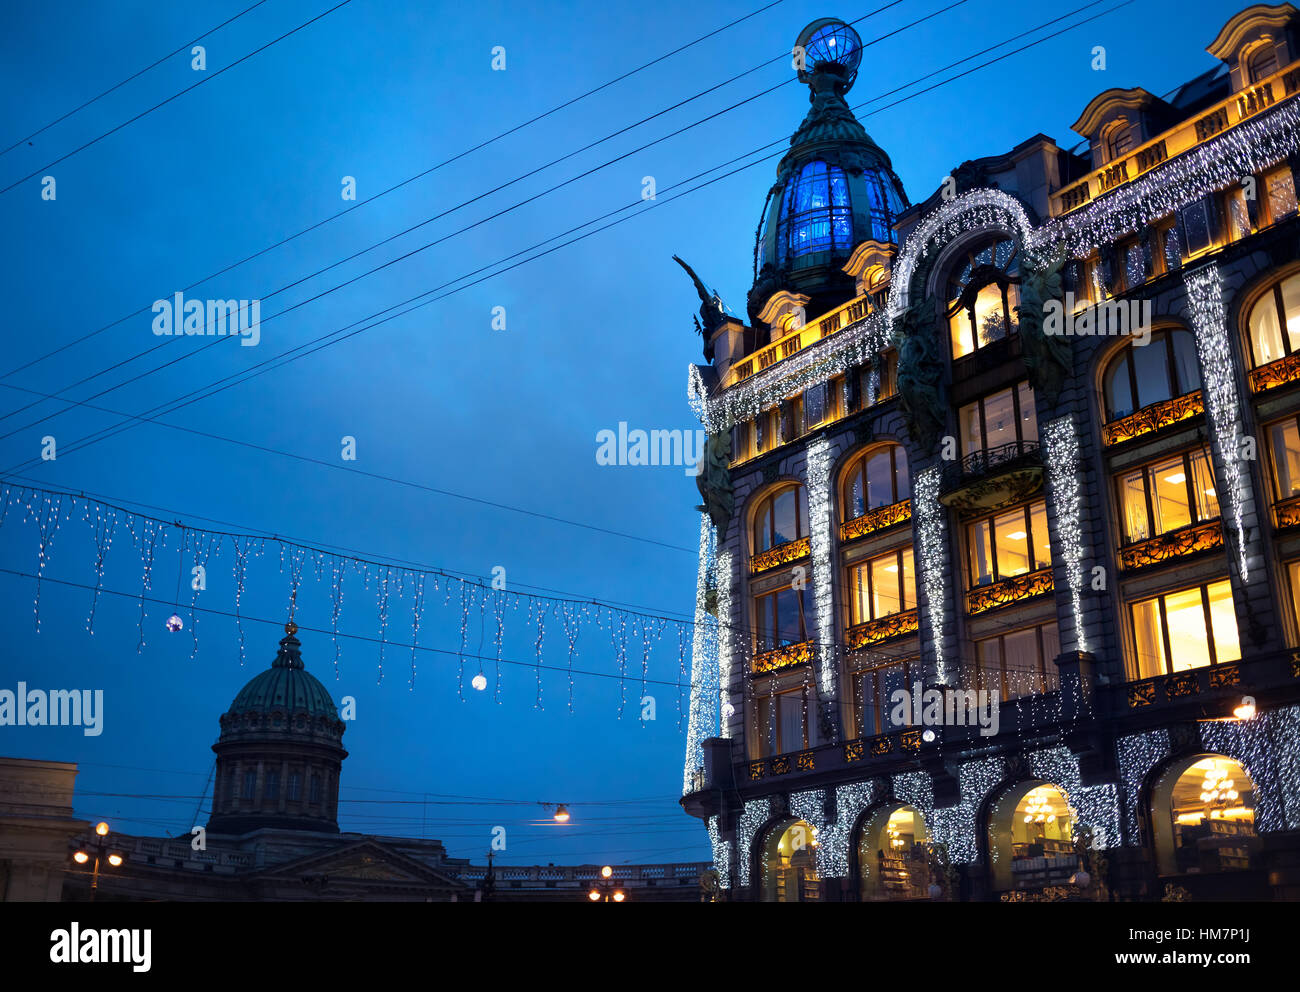 Singer Zinger Book House on Nevsky Prospect in the historic center of St Petersburg, Russia - Stock Image